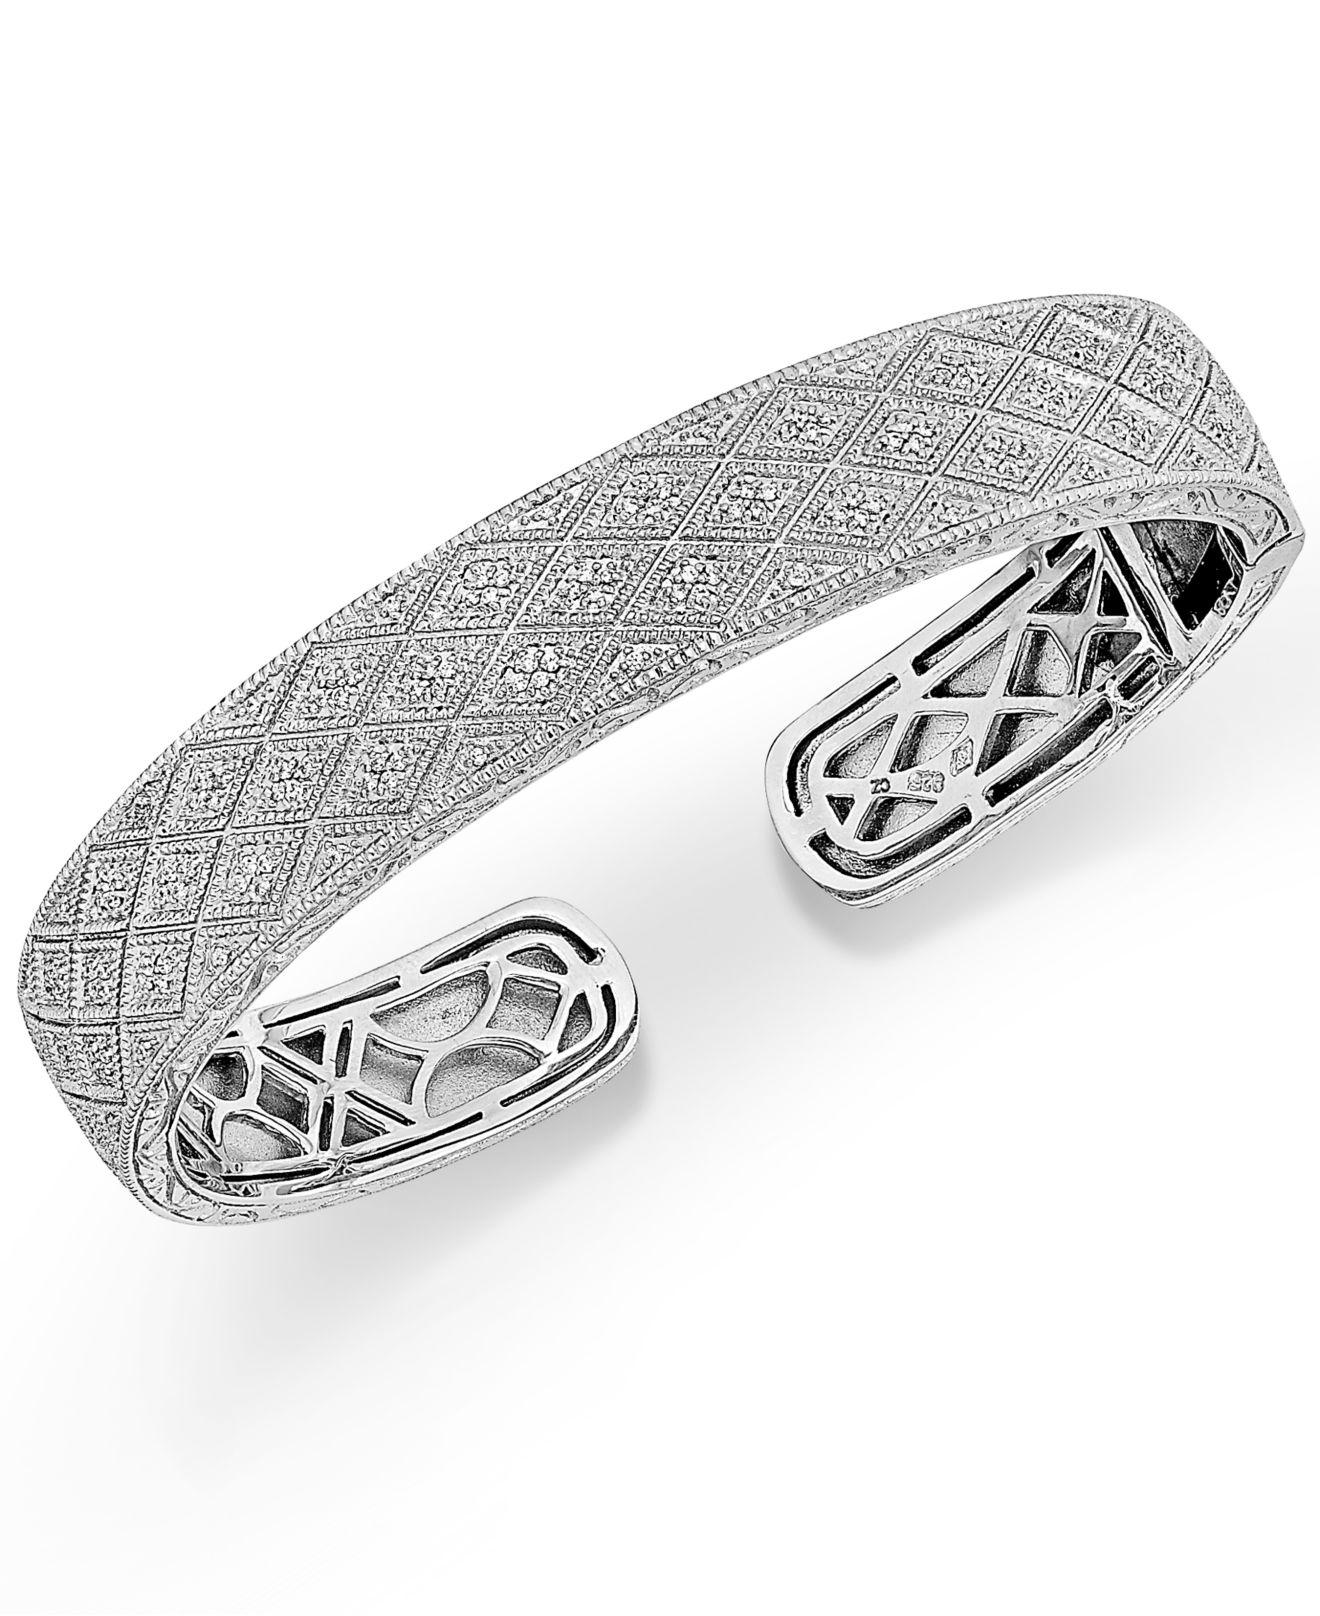 to hover bangles tw round bangle bracelet zm mv zoom kay en silver sterling diamond ct cut kaystore